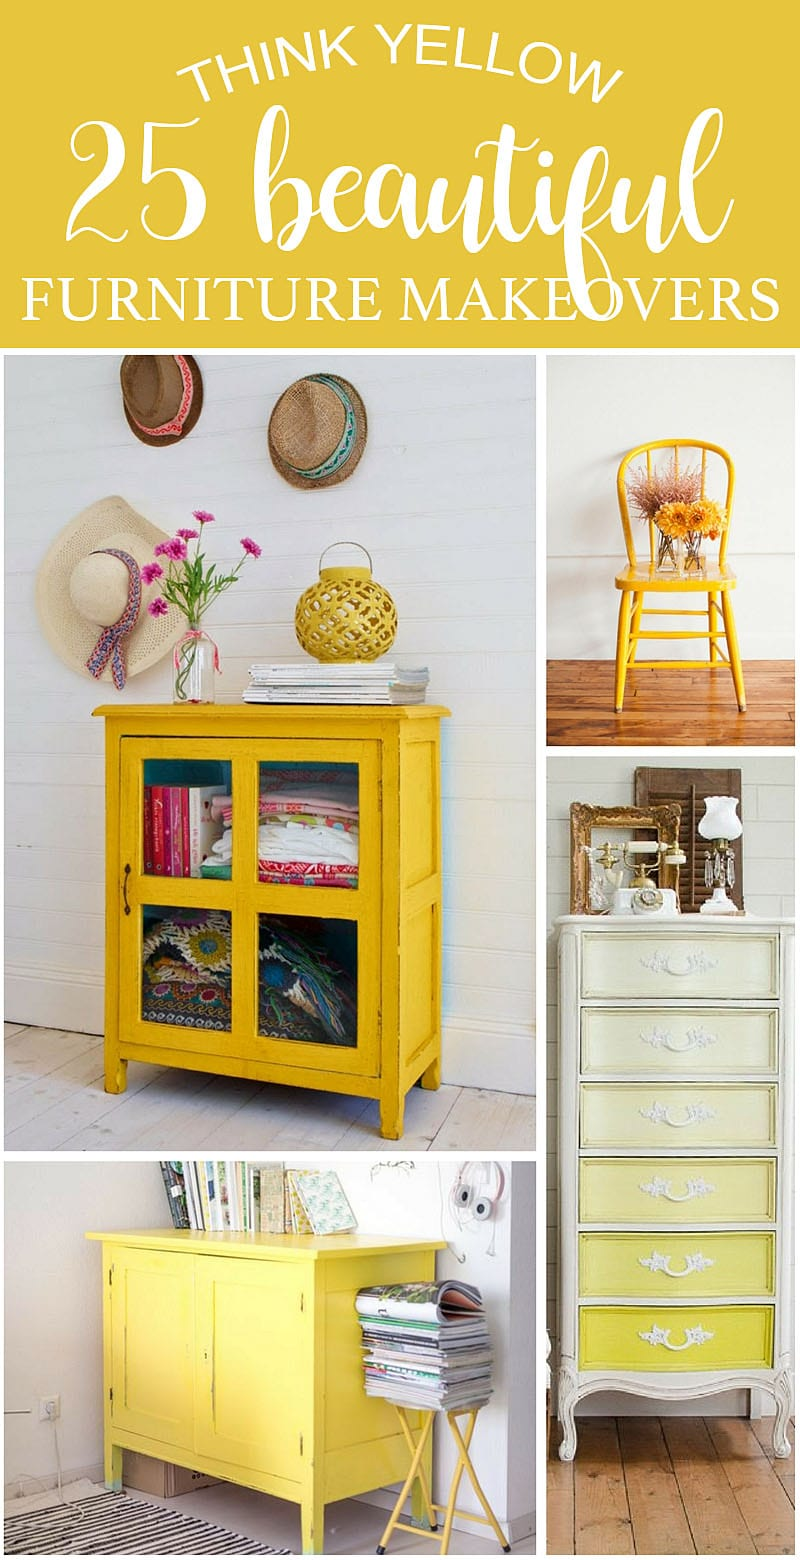 Think YELLOW - 25 Beautiful Furniture MakeOvers-SI Blog